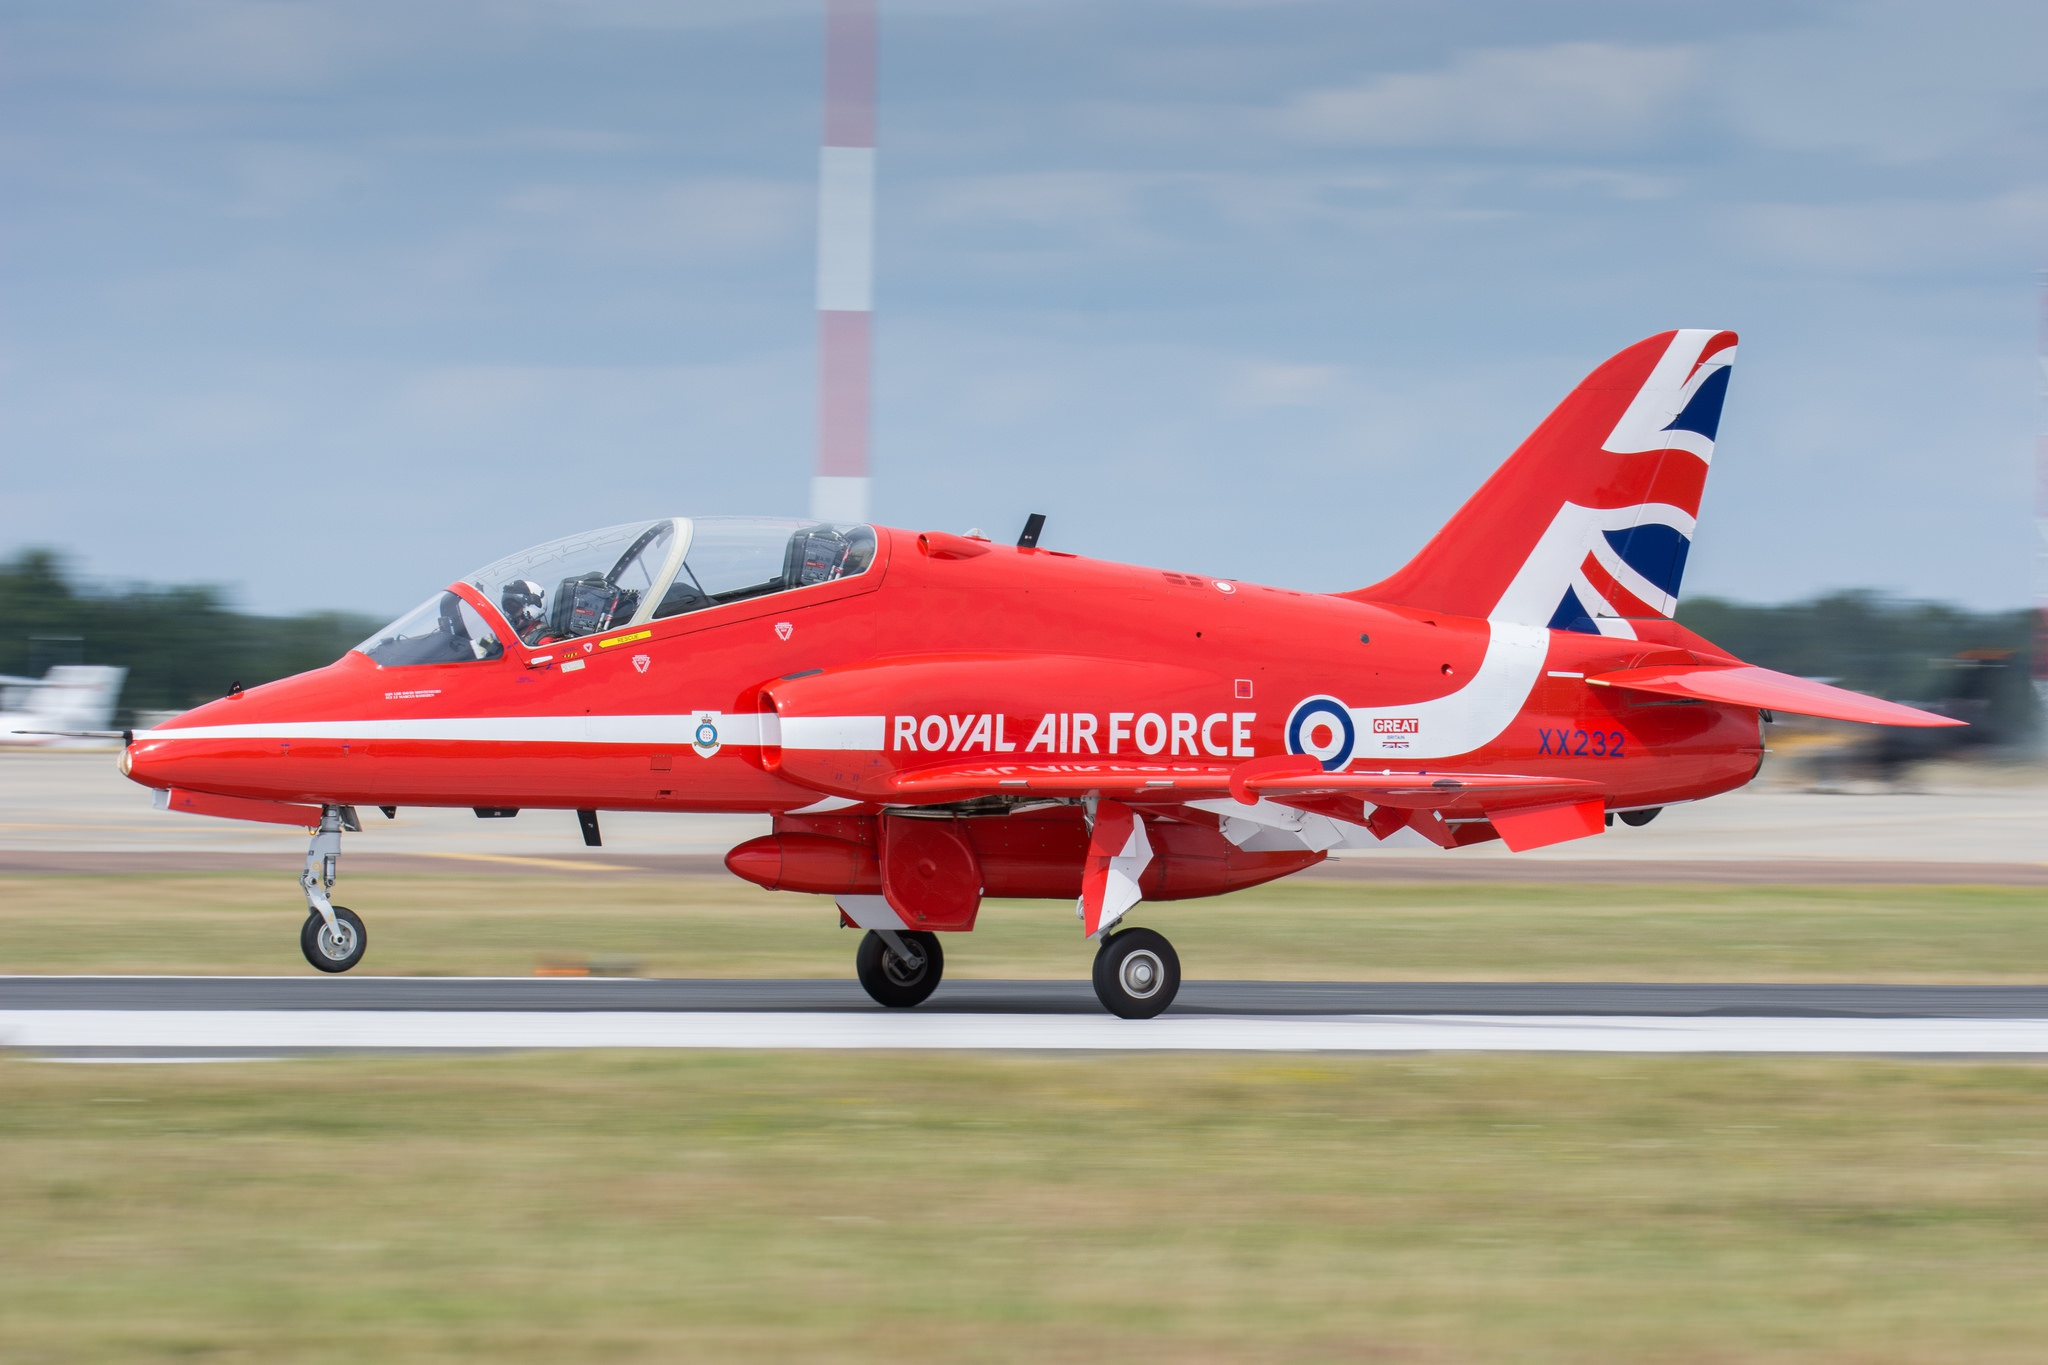 helicopter s es with Raf Red Arrows Bae Hawk Landing Riat 2015 on Watch likewise Watch besides Oh 58 Kiowa Warrior Small But Incredibly Effective Attack Helicopter further Colin McRaes Grieving Father Speaks Sons Ironic Death additionally Watch.